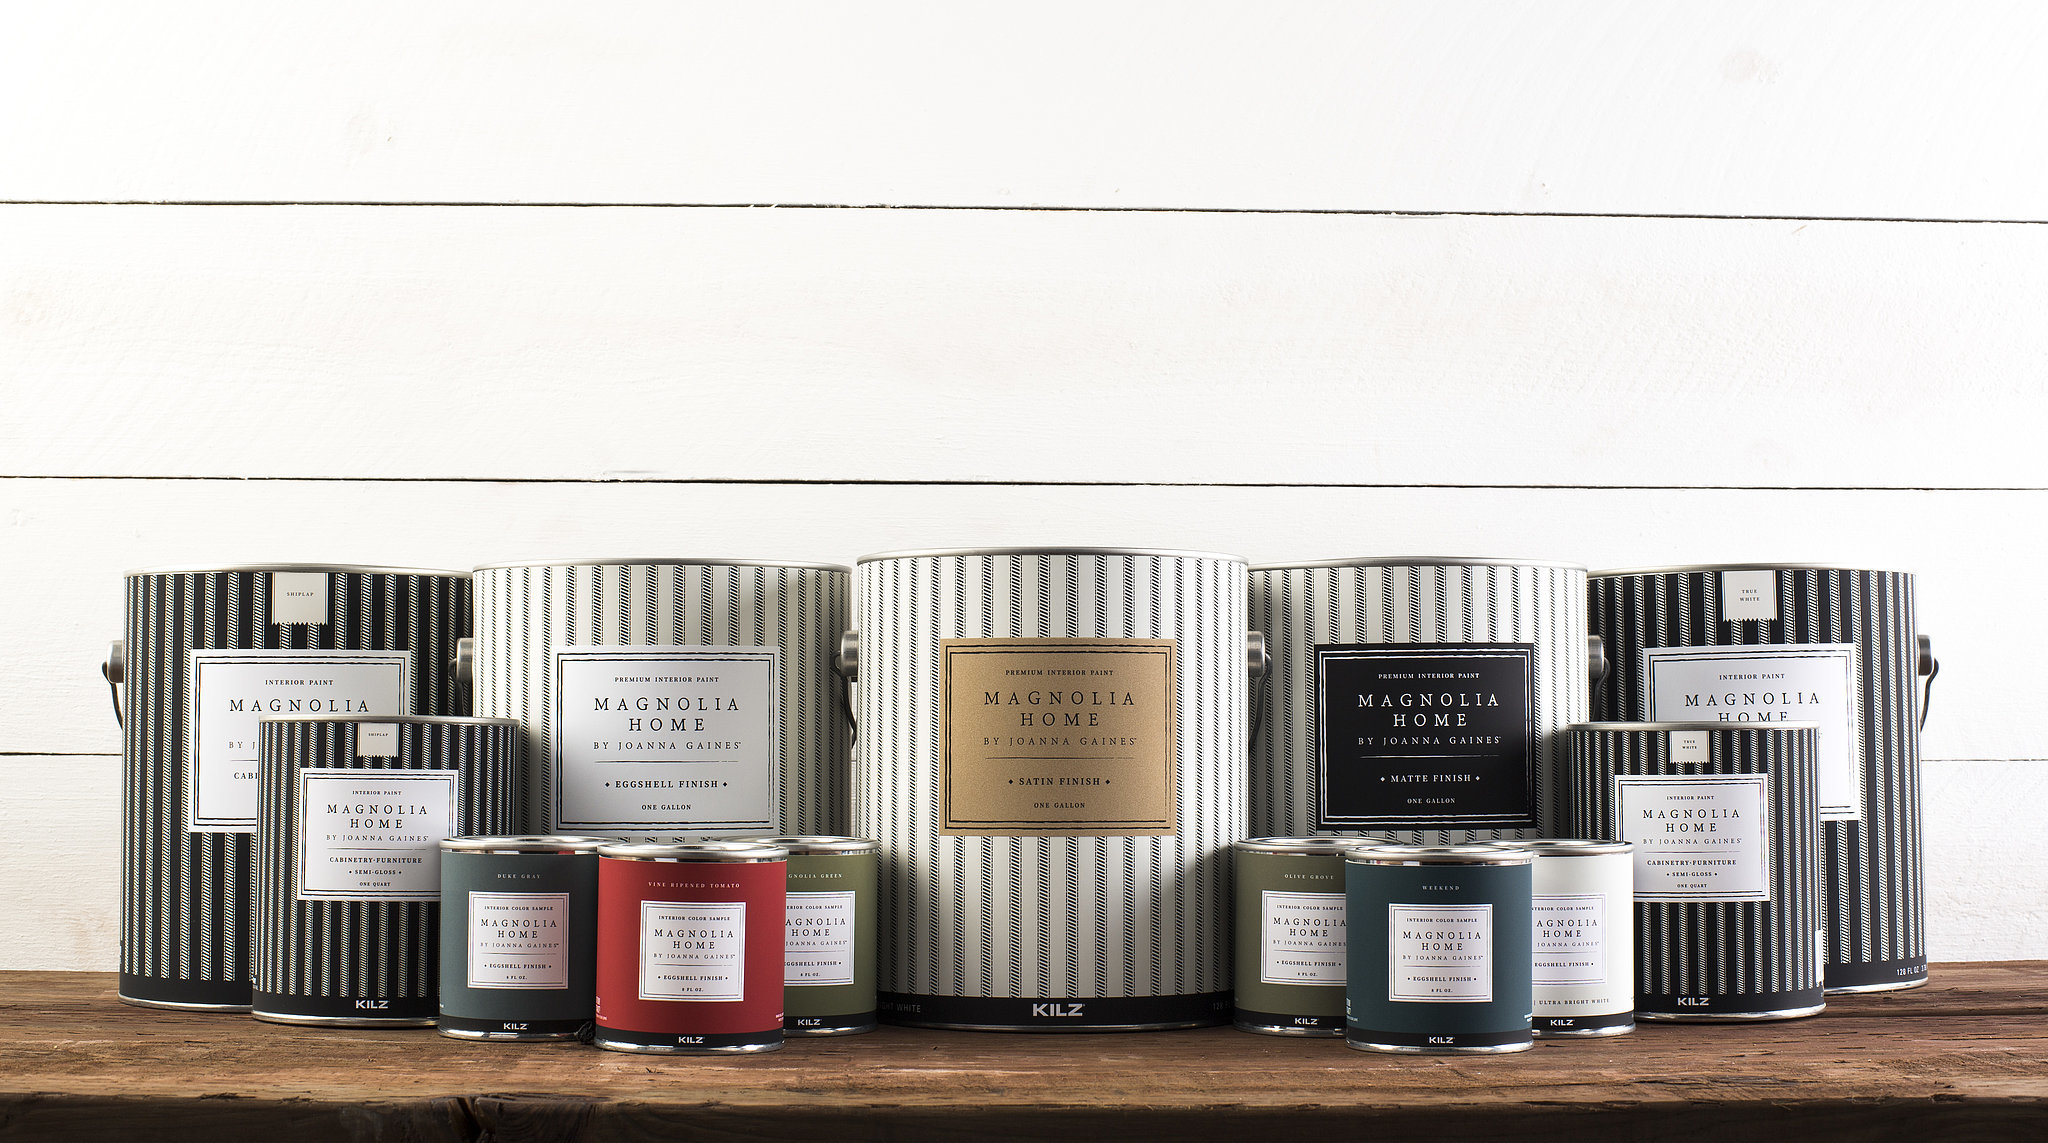 Joanna gaines releases paint collection for magnolia homes popsugar home Magnolia home furniture online